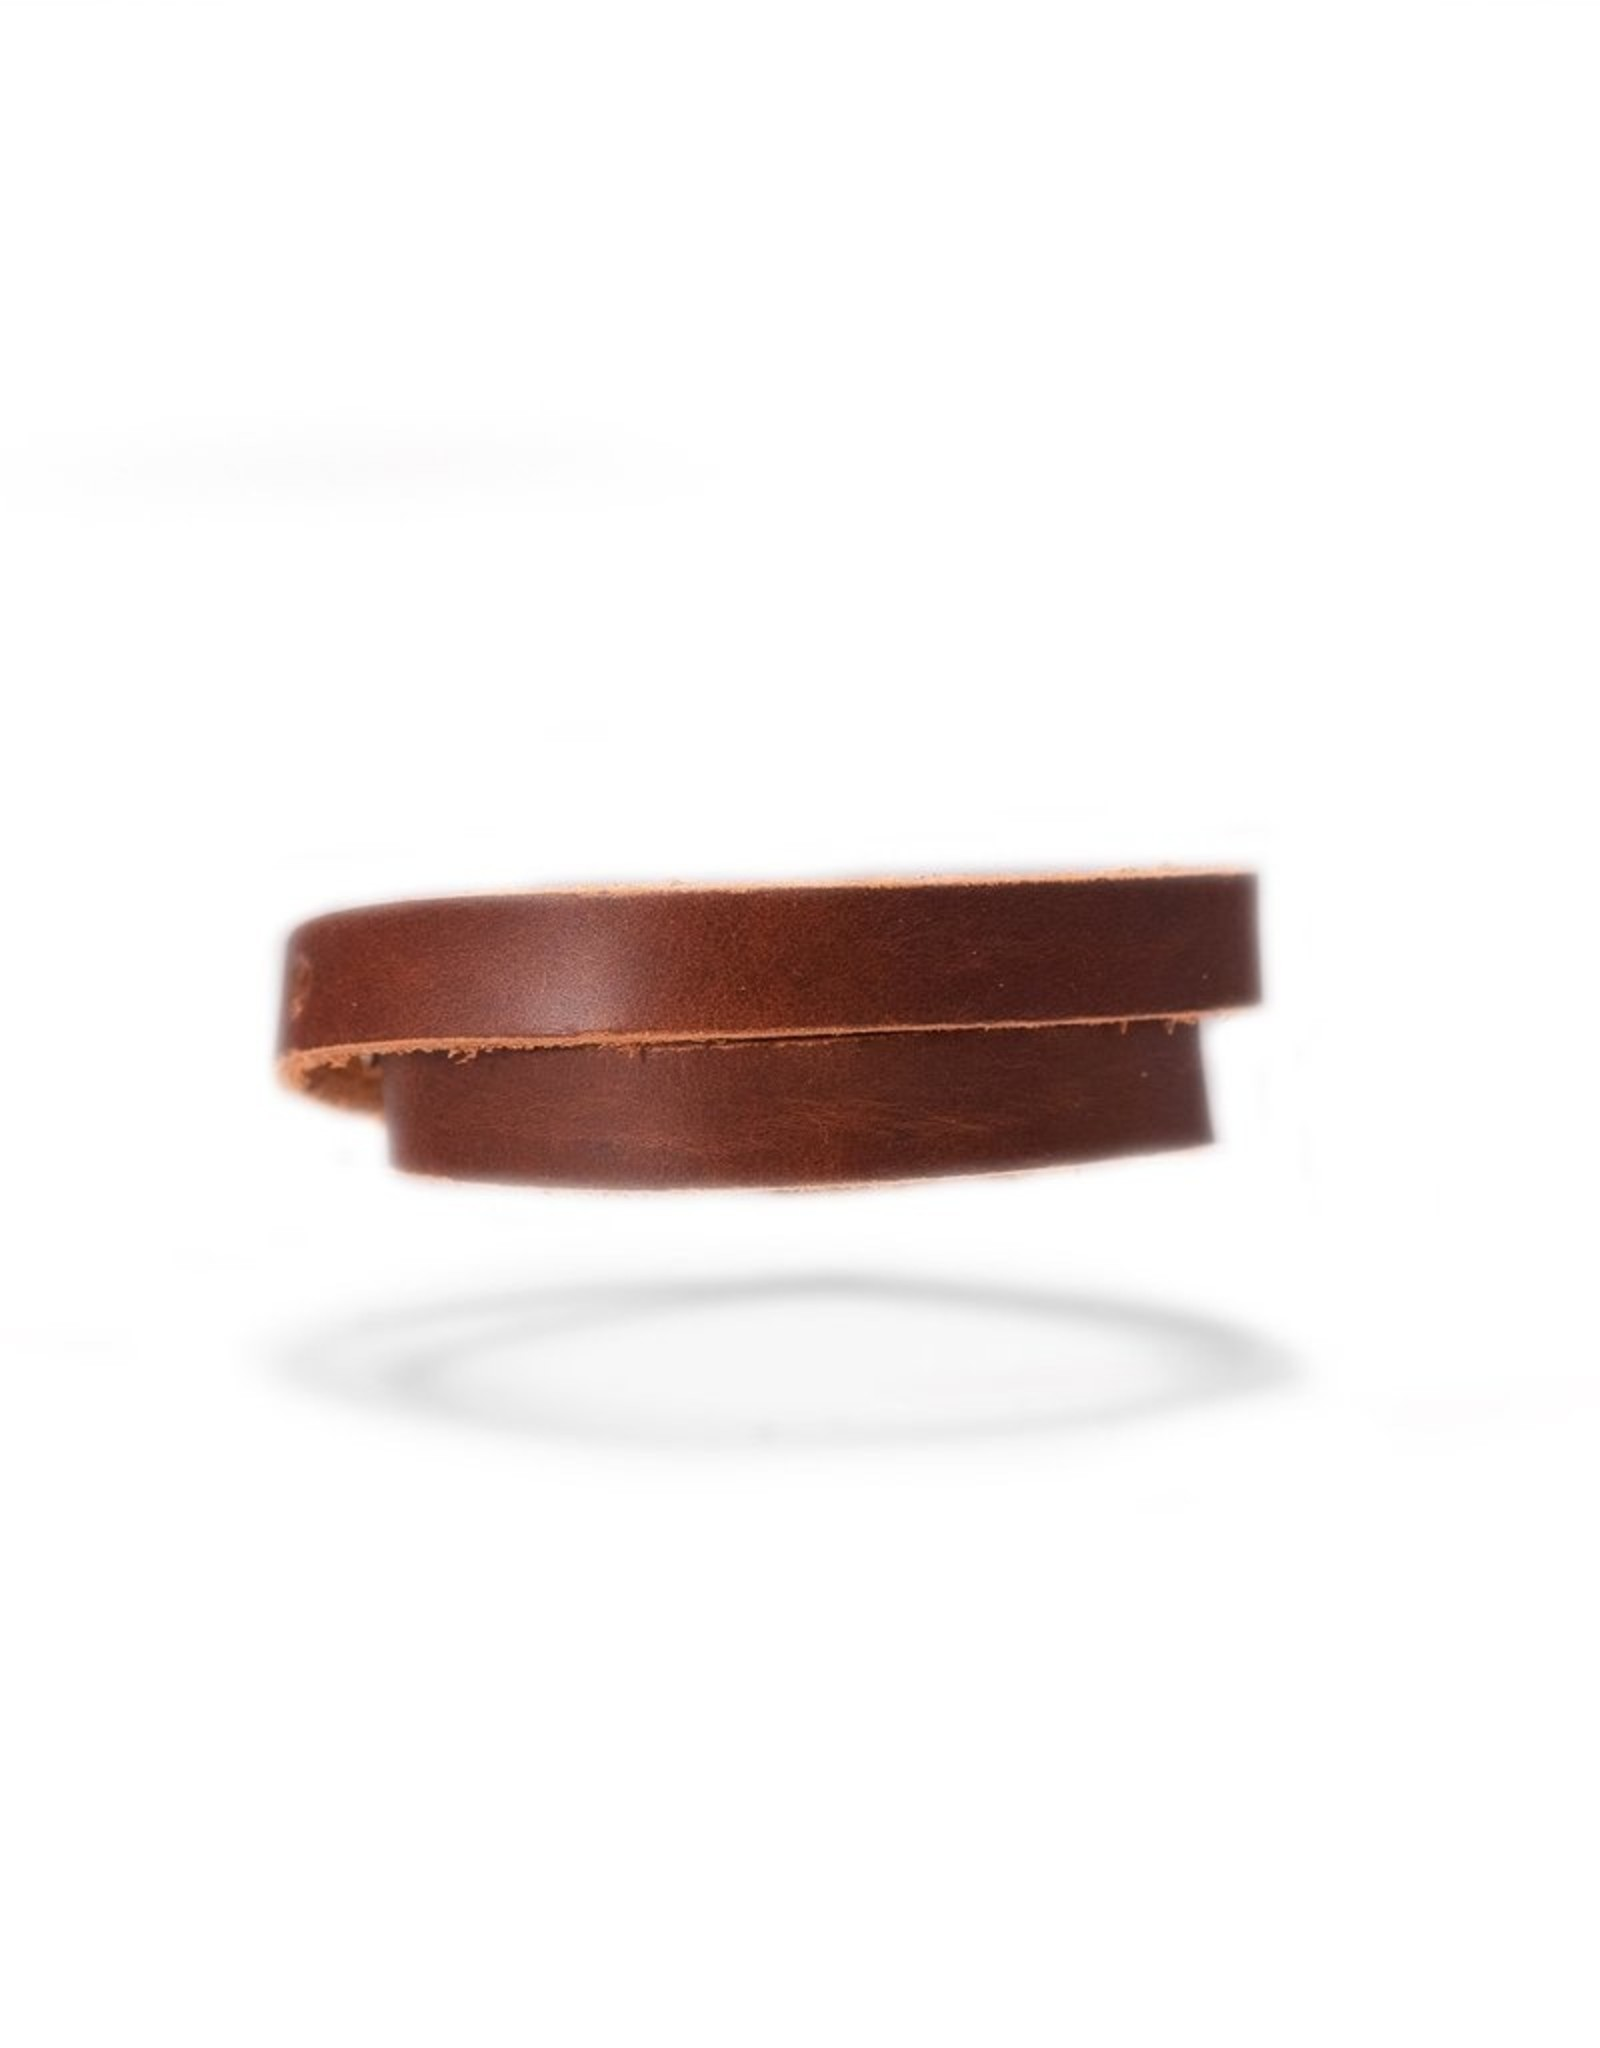 Rustico Highway Leather Bracelets by Rustico